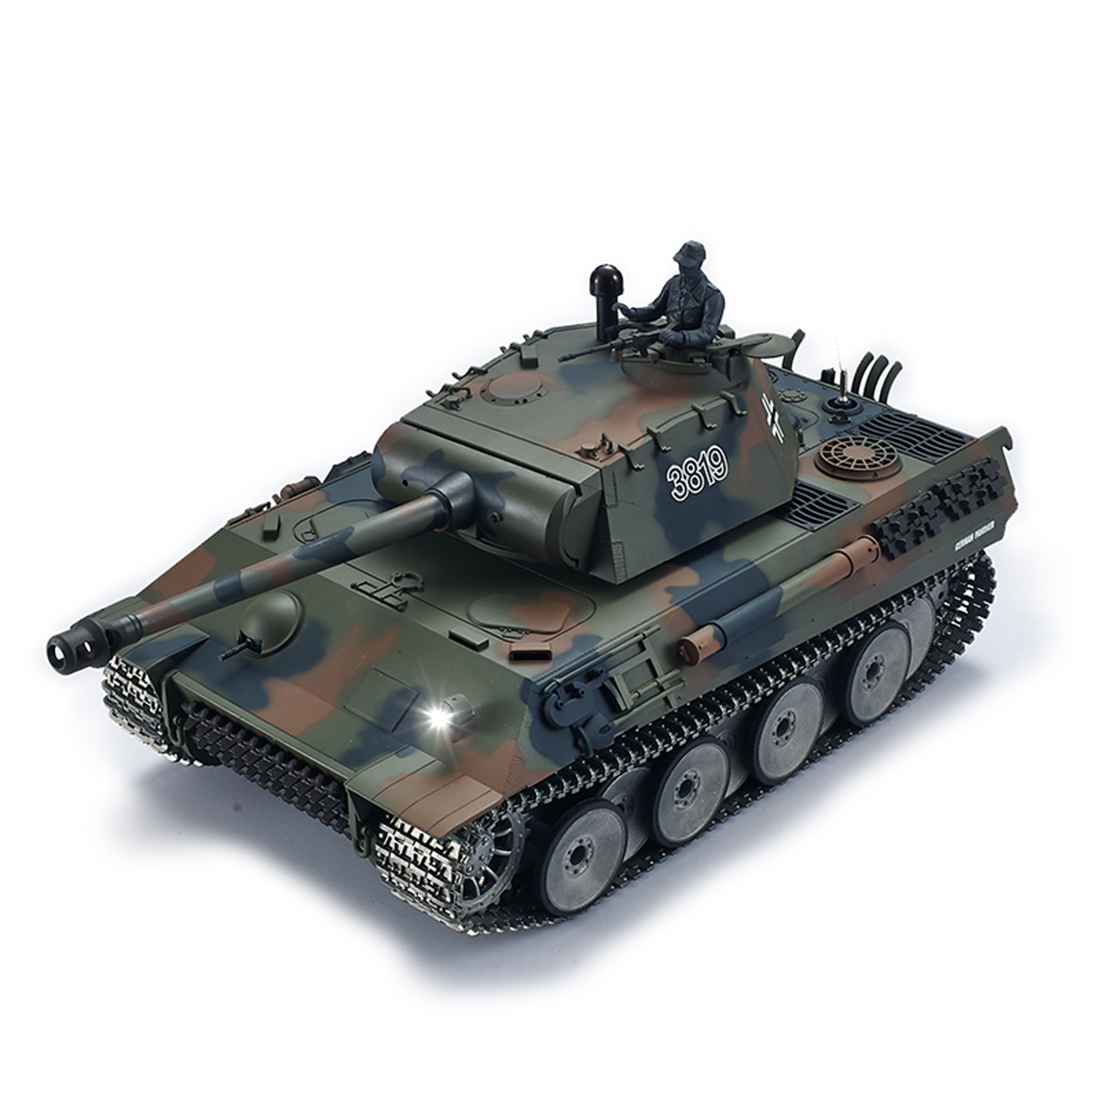 1:16 German Leopard Heavy <font><b>Tank</b></font> 2.4G Remote Control Model Military <font><b>Tank</b></font> With Sound Smoke Shooting Effect 3 Type Edition image